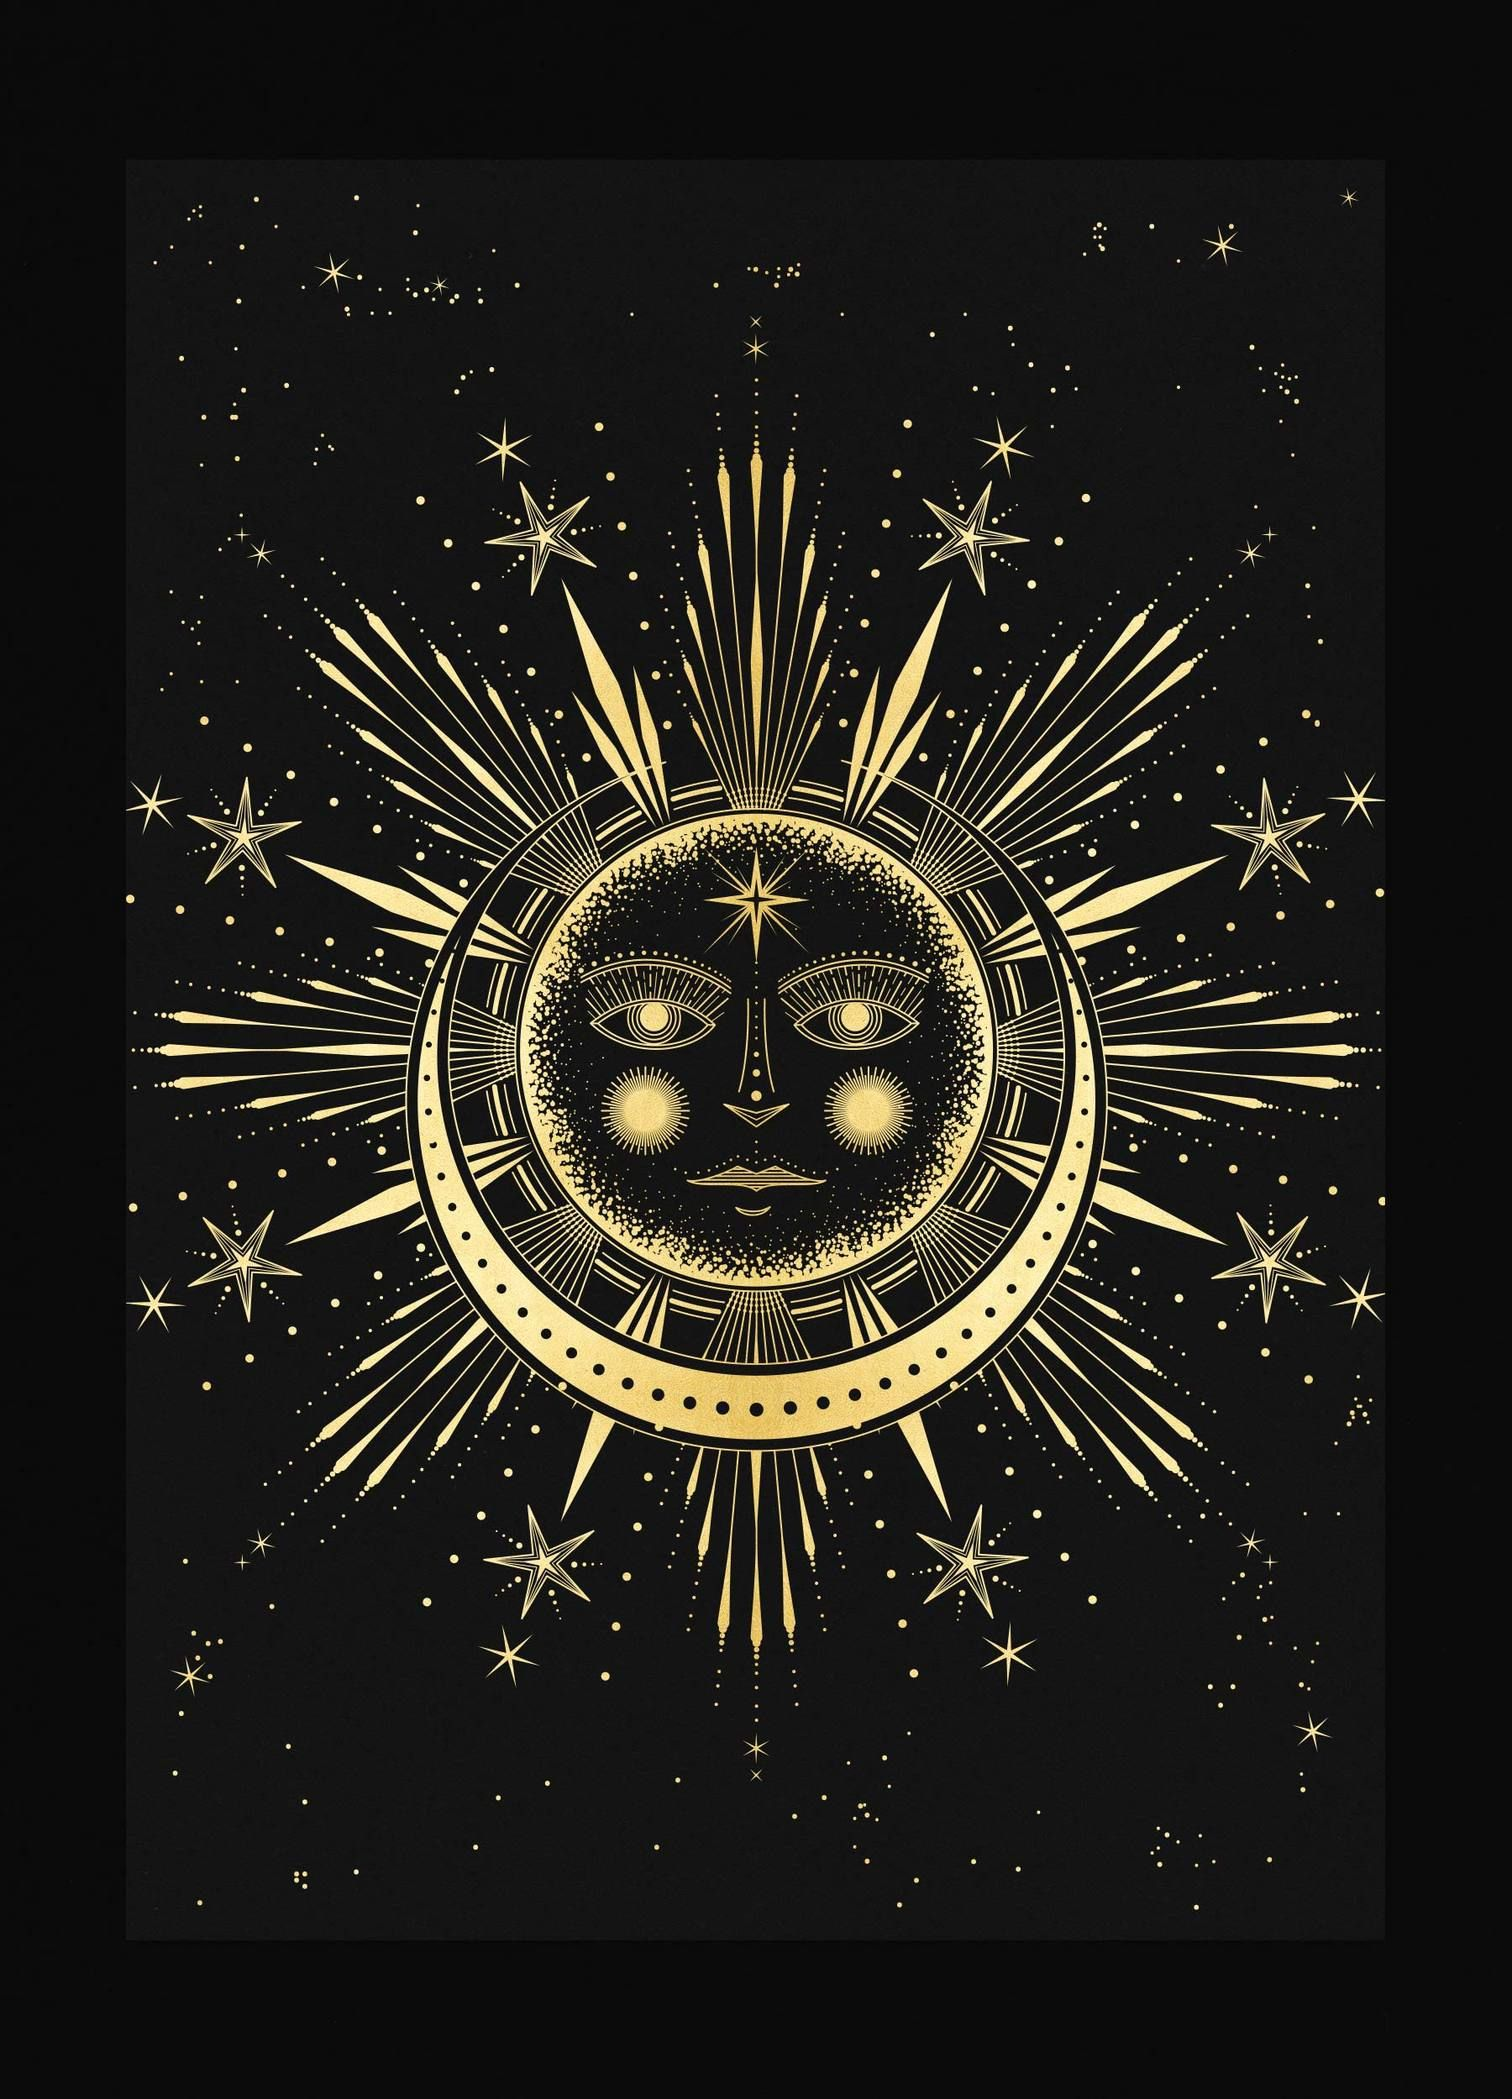 Sun Moon Affair Art Print In Gold Foil And Black Paper With Stars And Moon By Cocorrina Moon Art Sun Art Art Prints